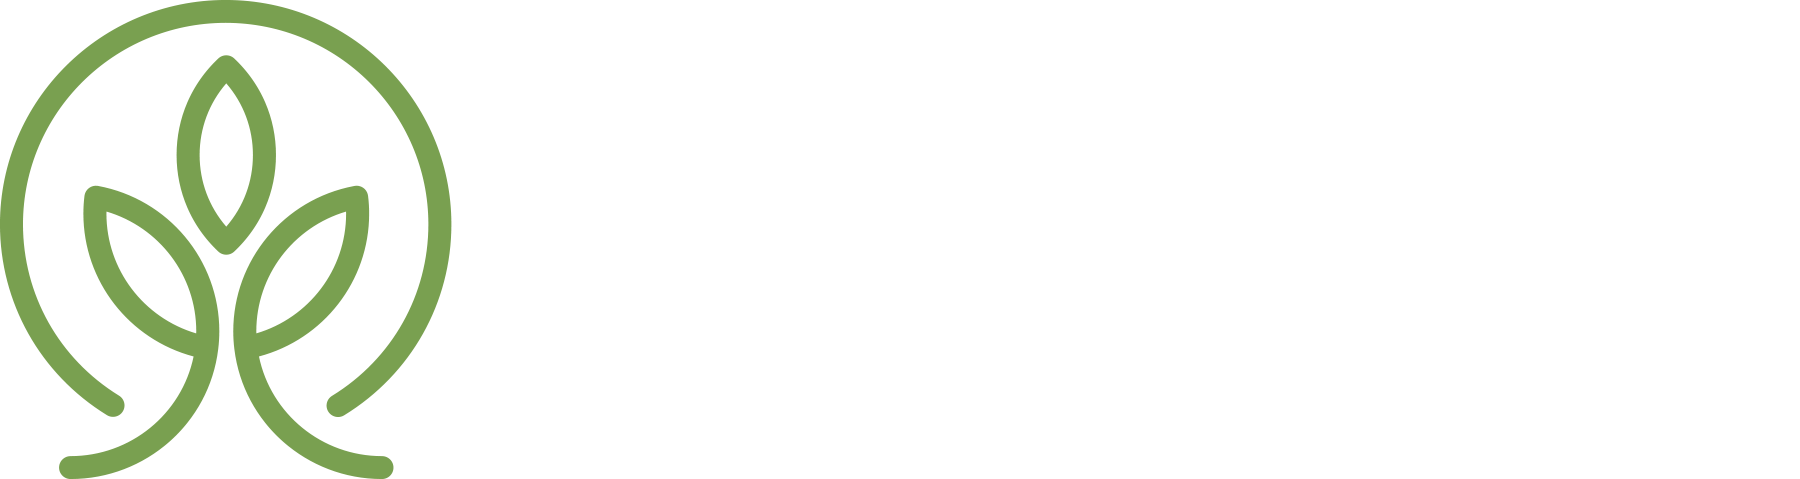 East White Oak Bible Church